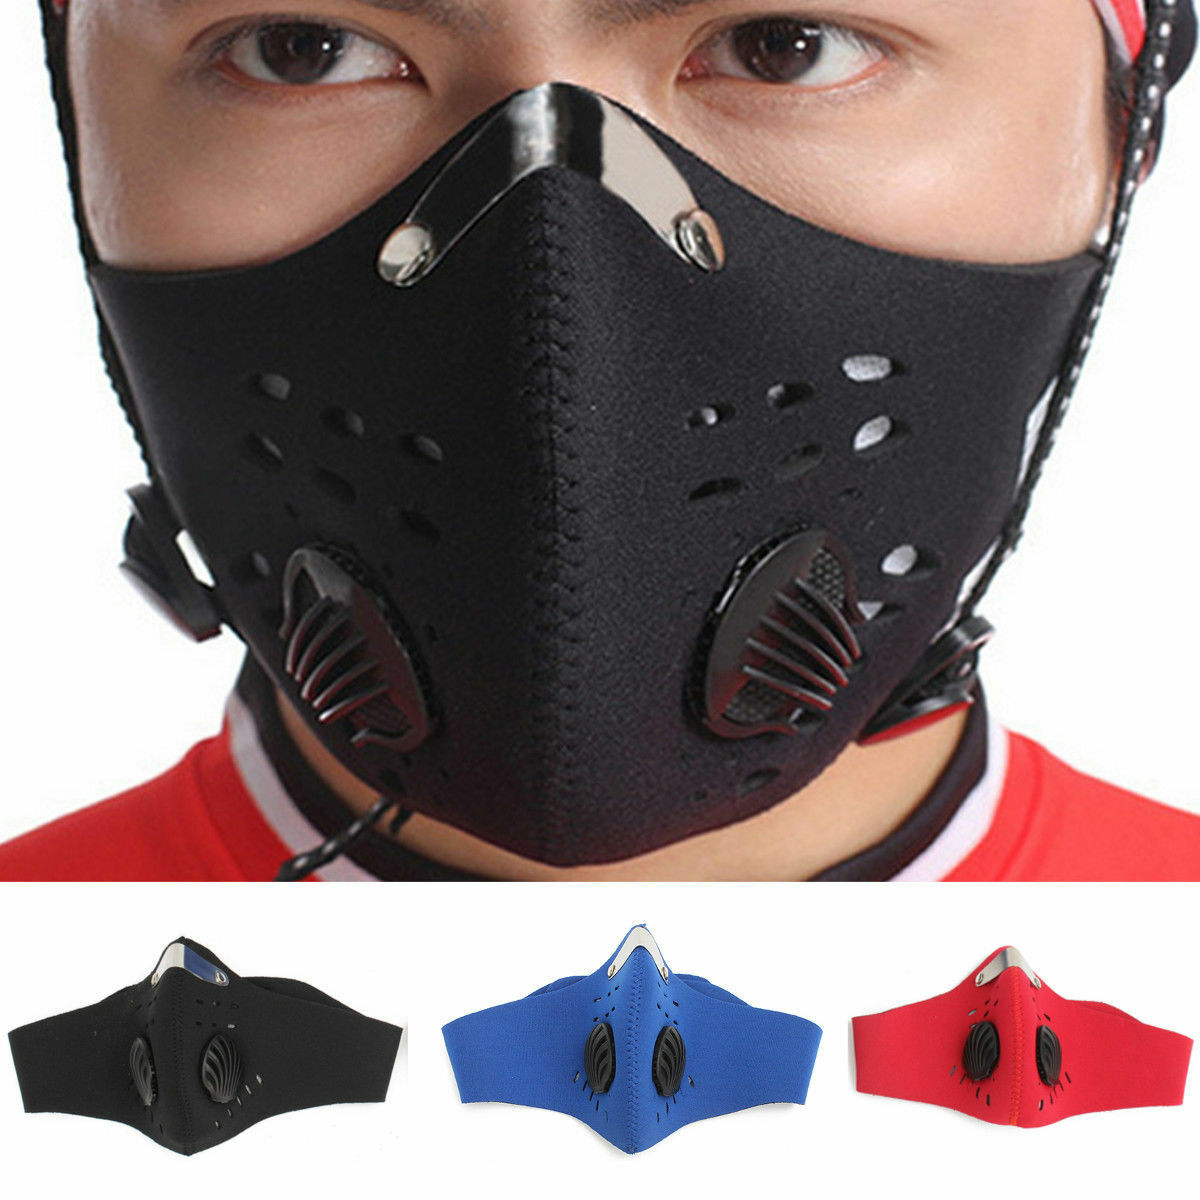 Outdoor Sports Bike Face Mask Filter Air Anti-Pollution